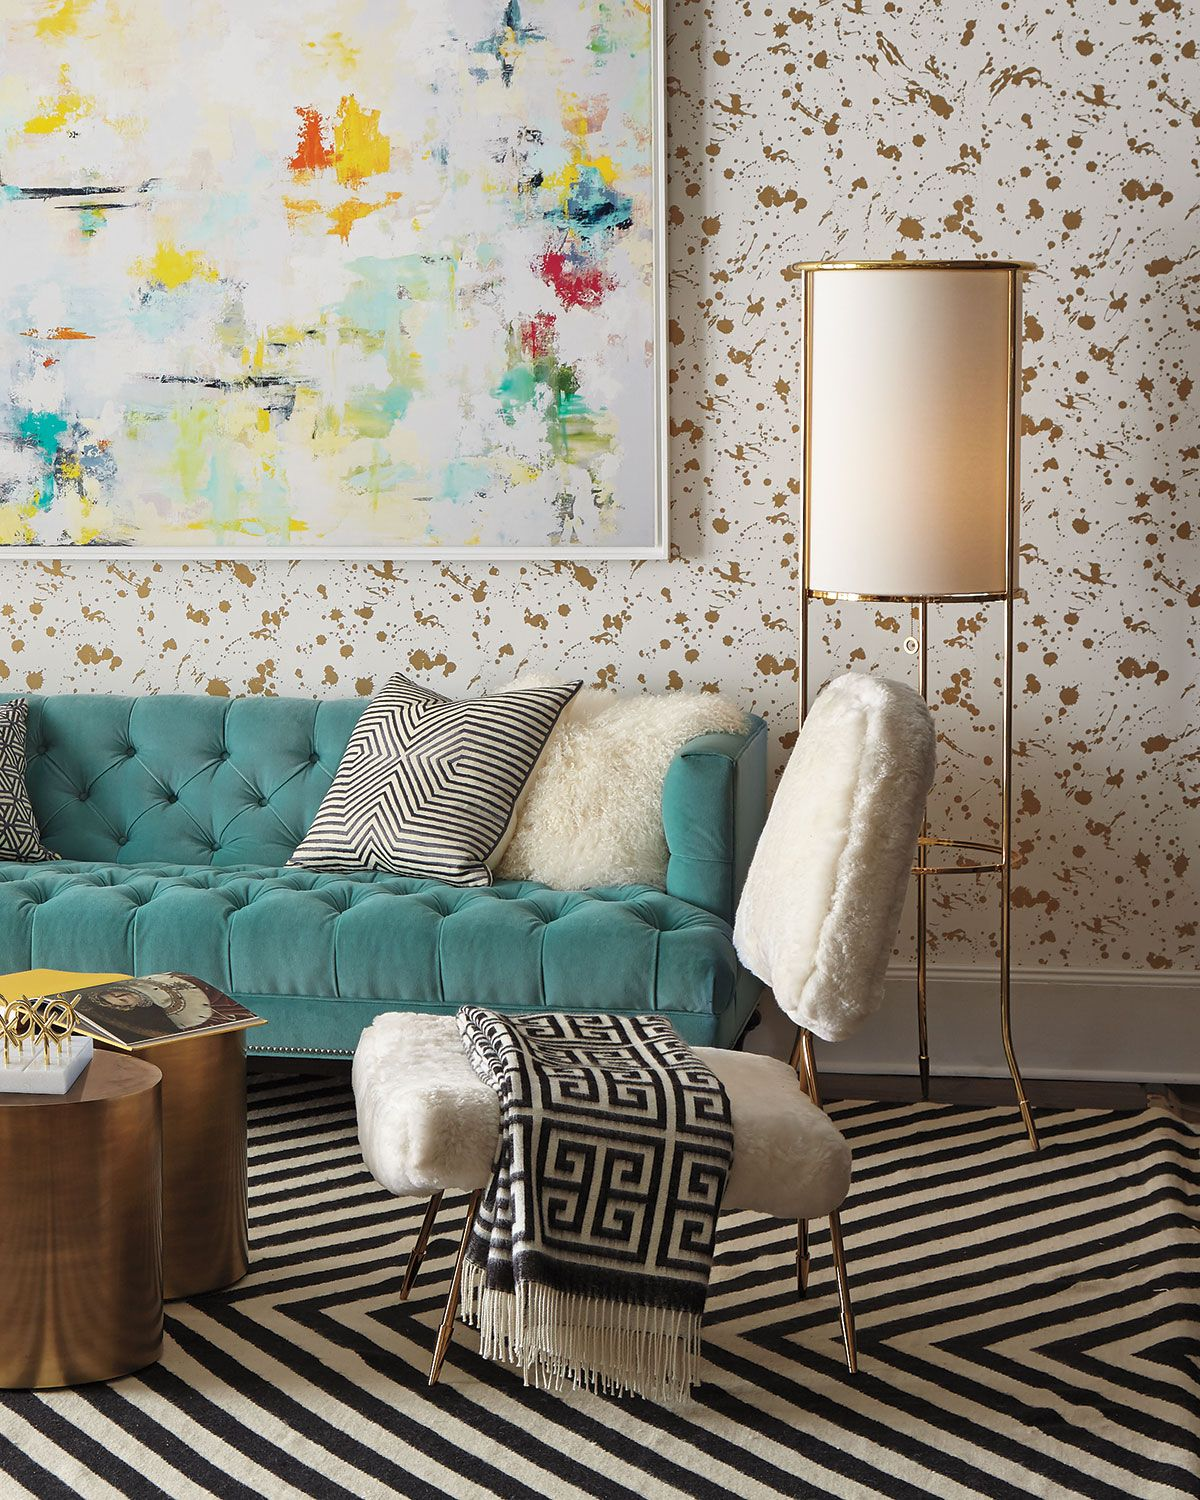 Turquoise Lounge Chair Old High With Wheels Jonathan Adler Maxime White Products Pinterest